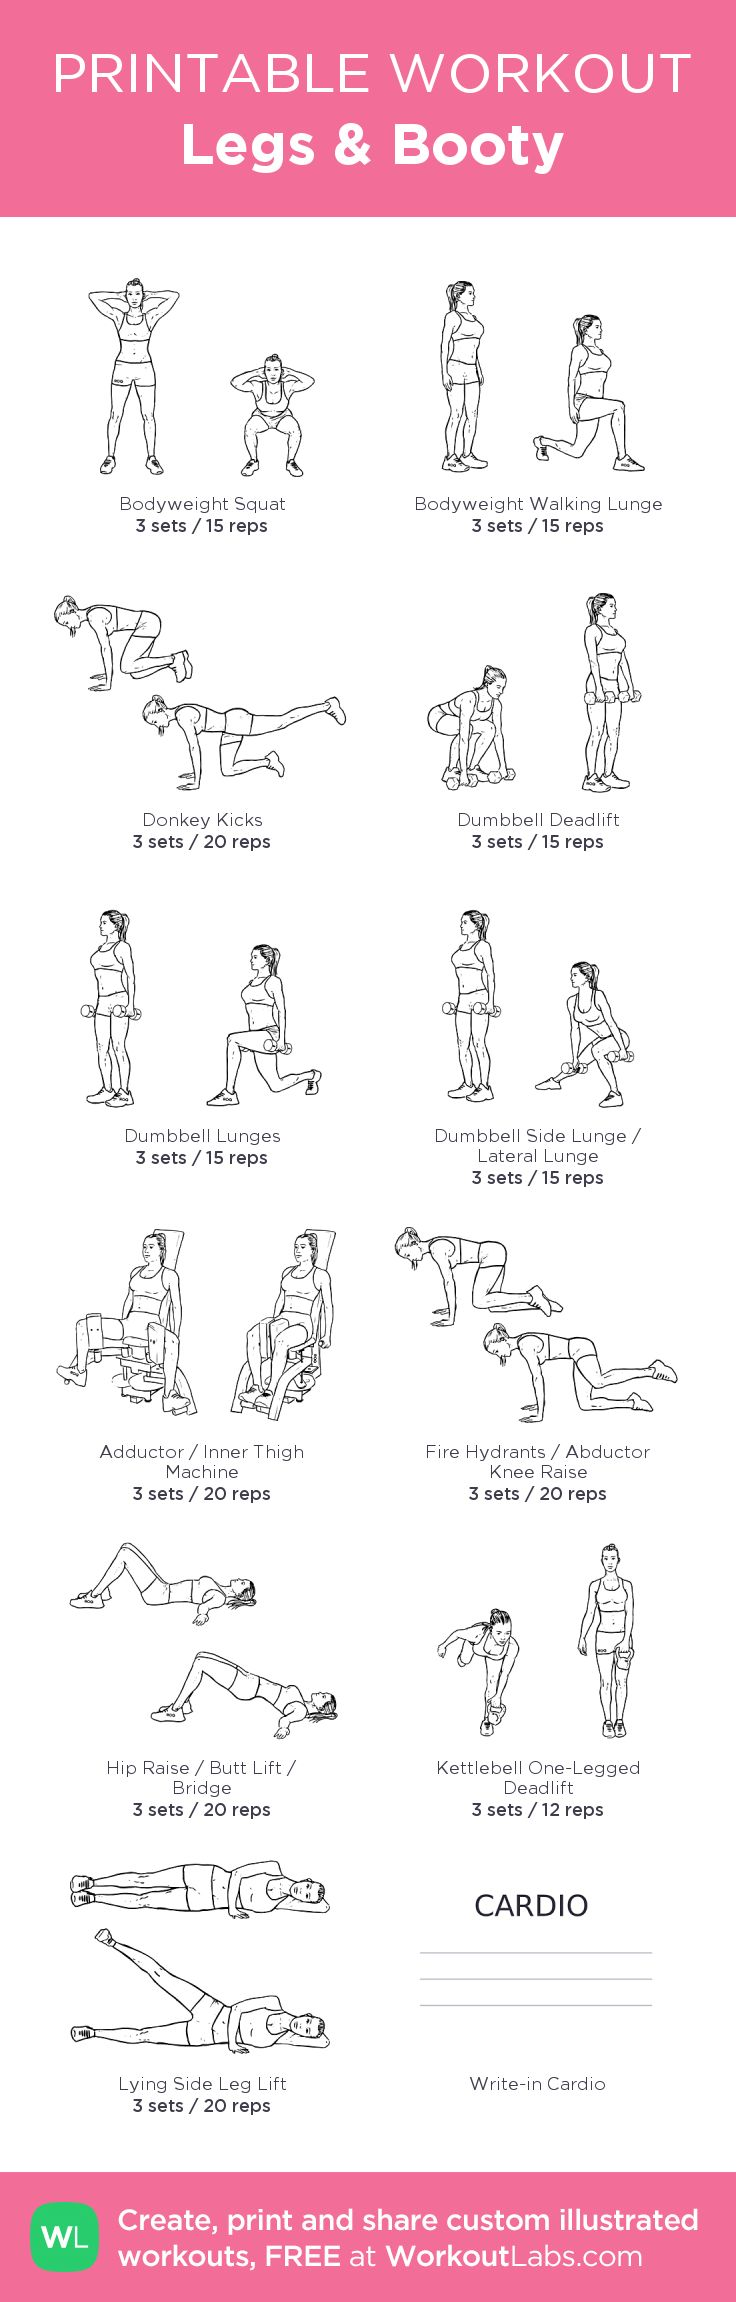 Legs & Booty:my visual workout created at WorkoutLabs.com • Click through to customize and download as a FREE PDF! #customworkout